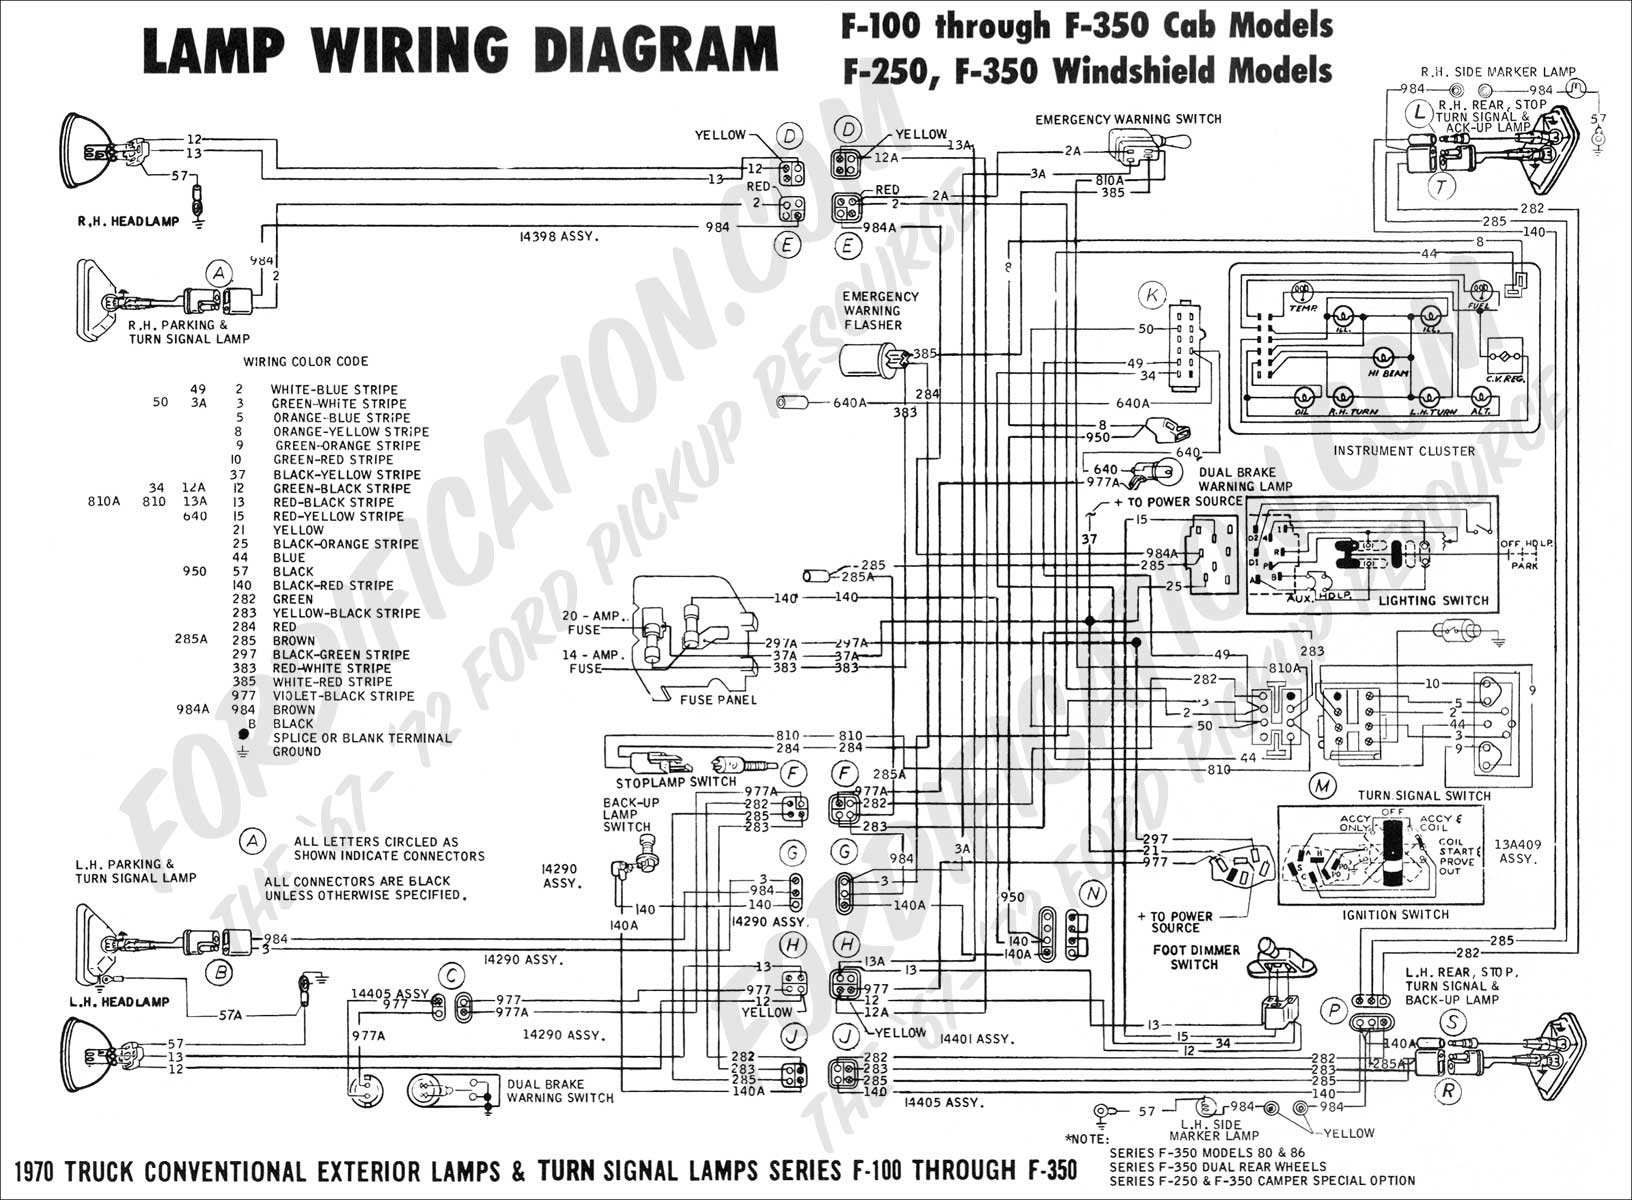 Ford Truck Wiring Color Codes | Wiring Diagram - 01 Silverado Trailer Wiring Diagram